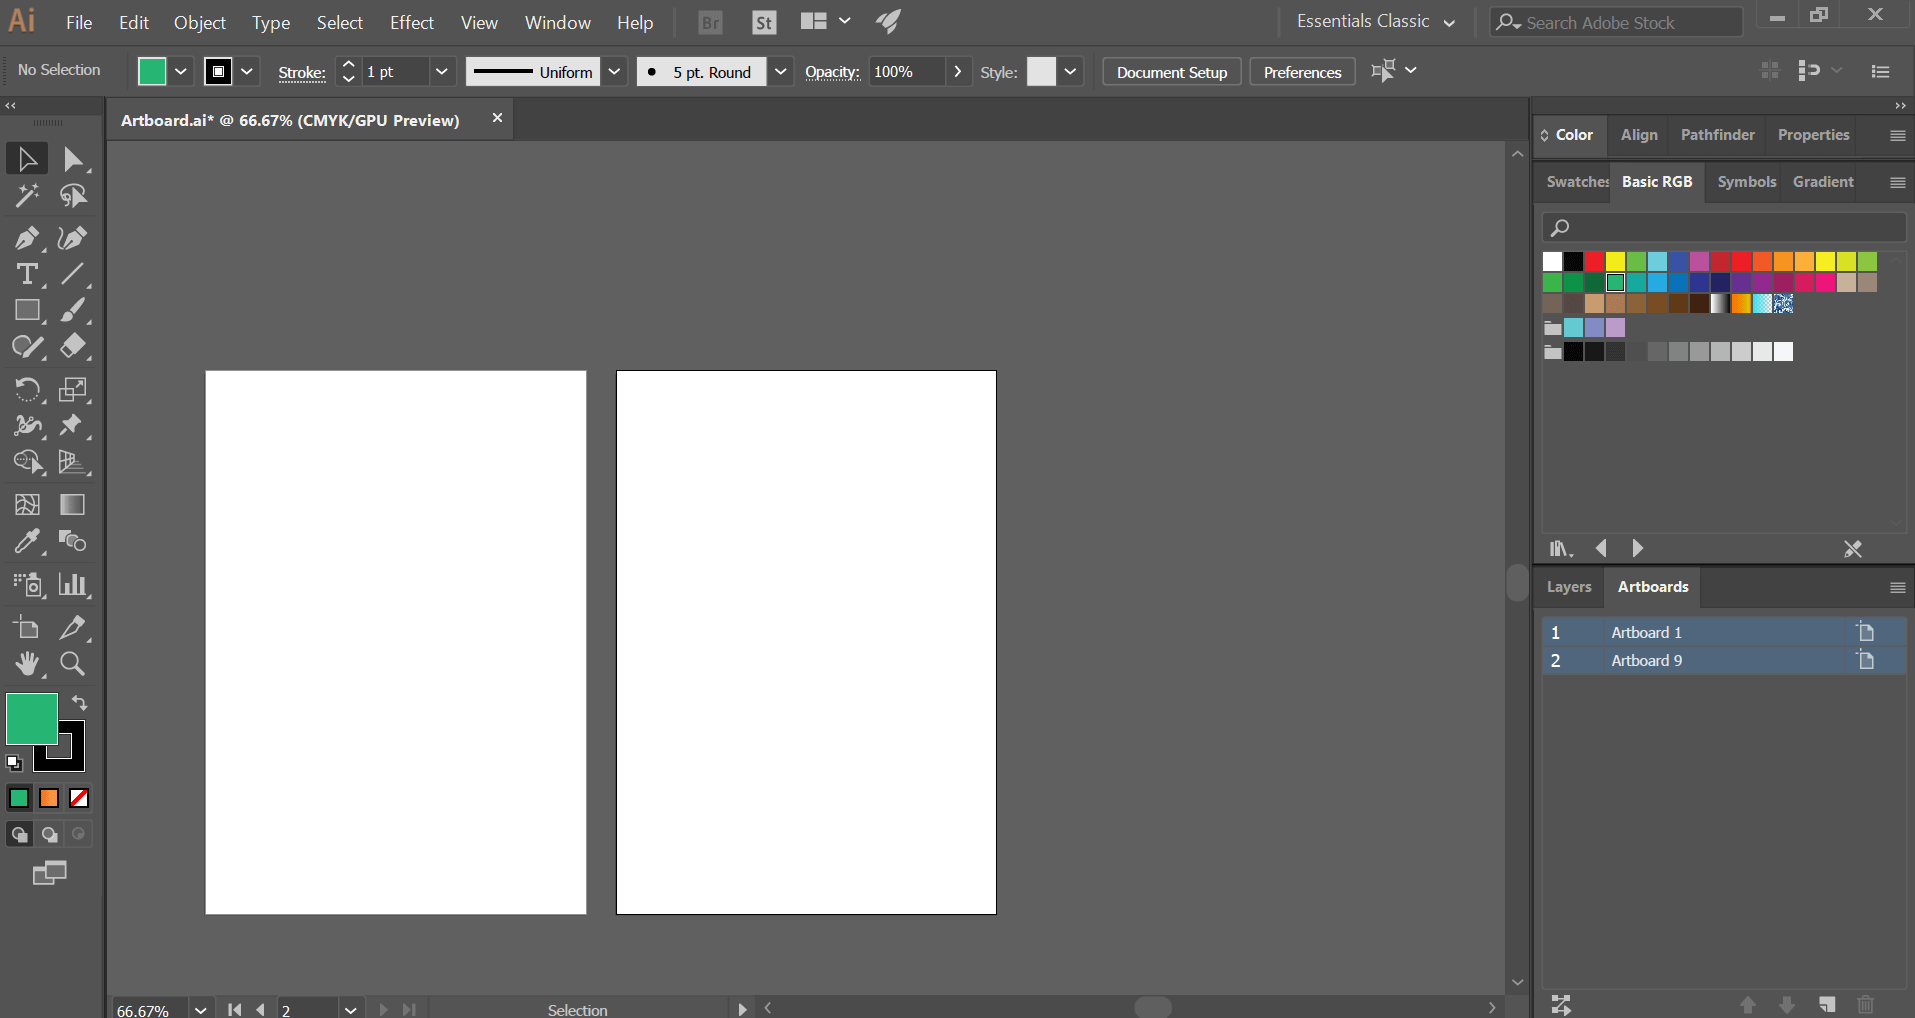 How to Change Artboard Size in Illustrator 1-9